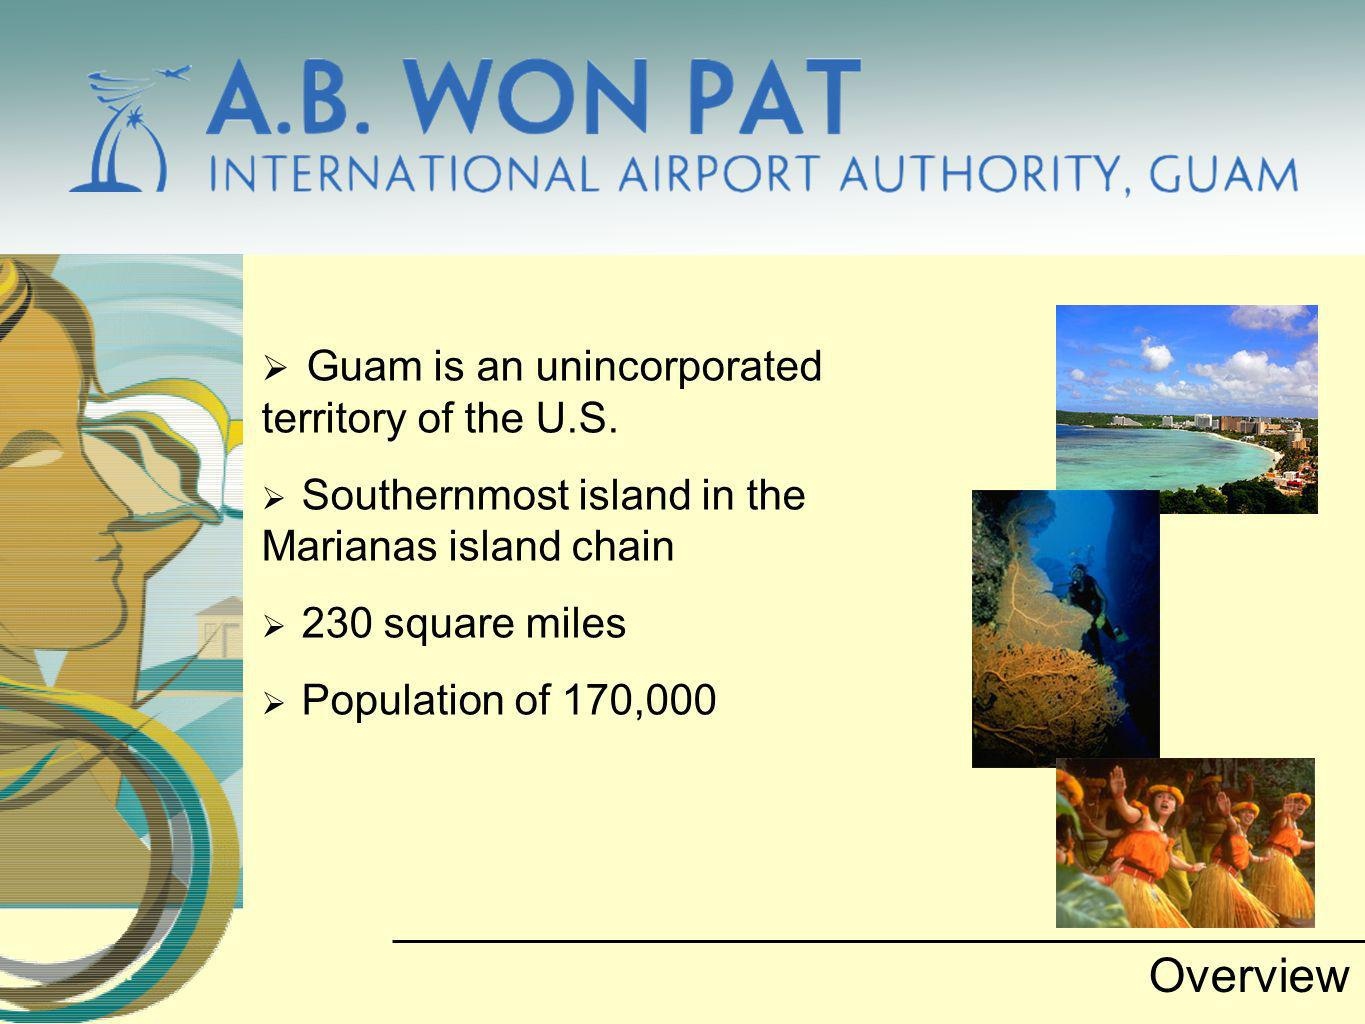 Guam is an unincorporated territory of the U.S.